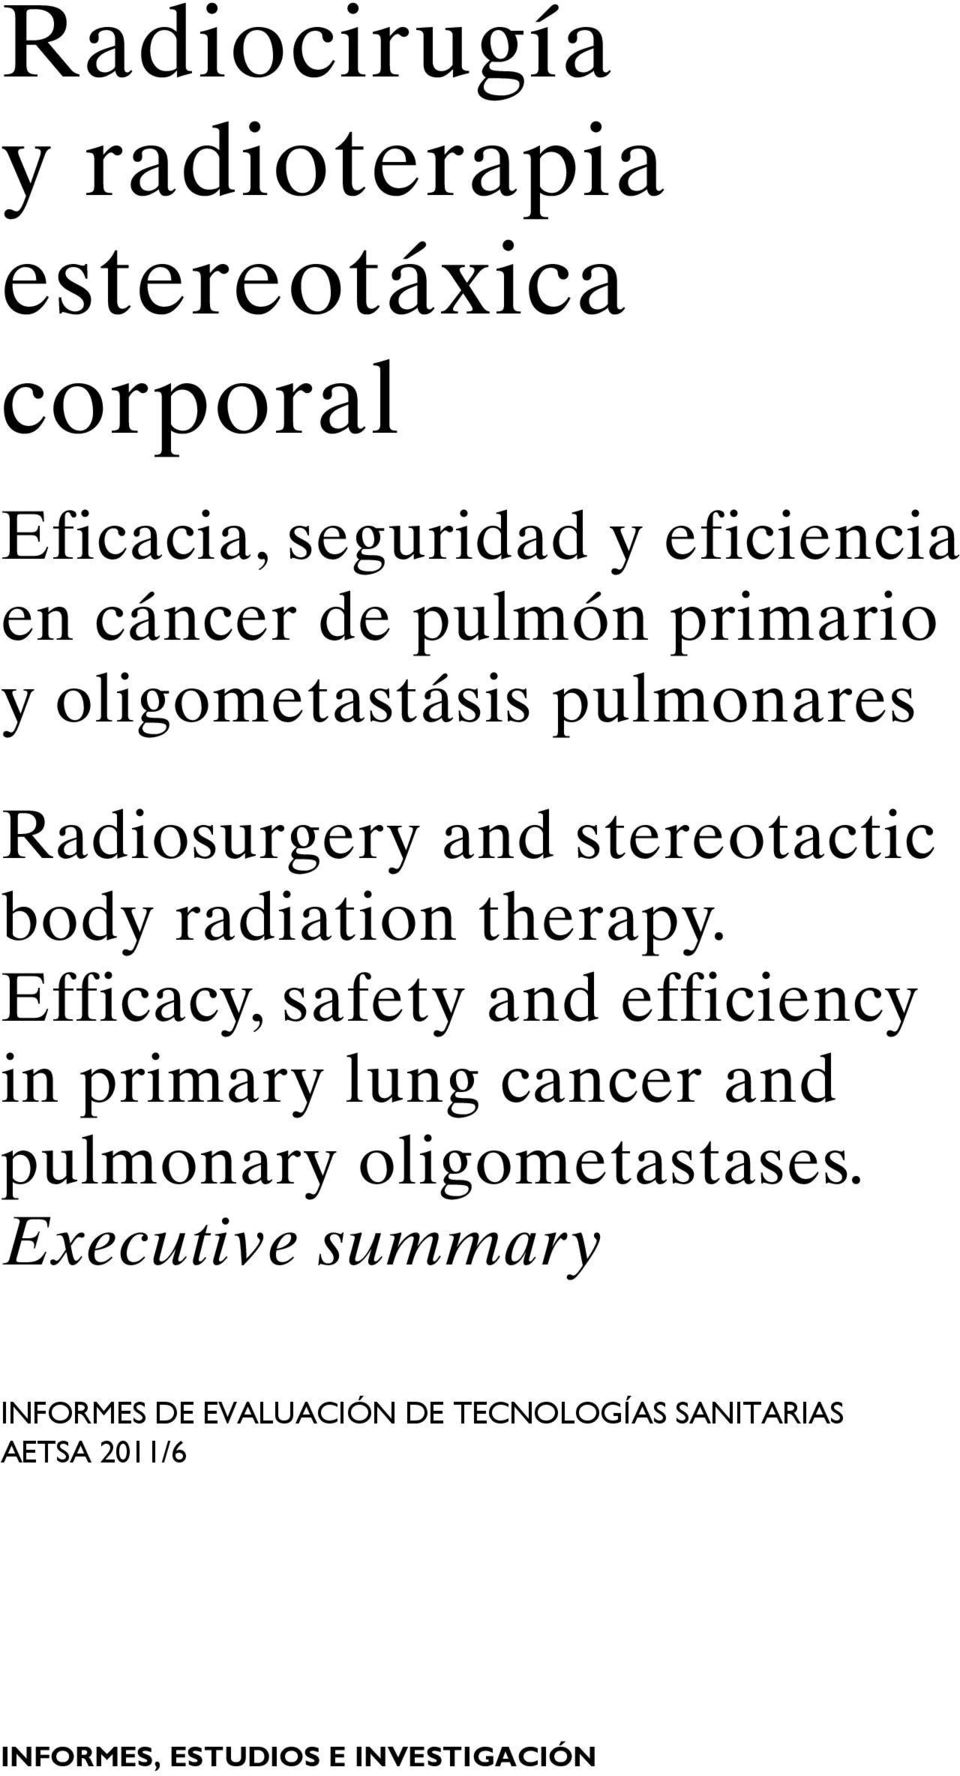 Efficacy, safety and efficiency in primary lung cancer and pulmonary oligometastases.